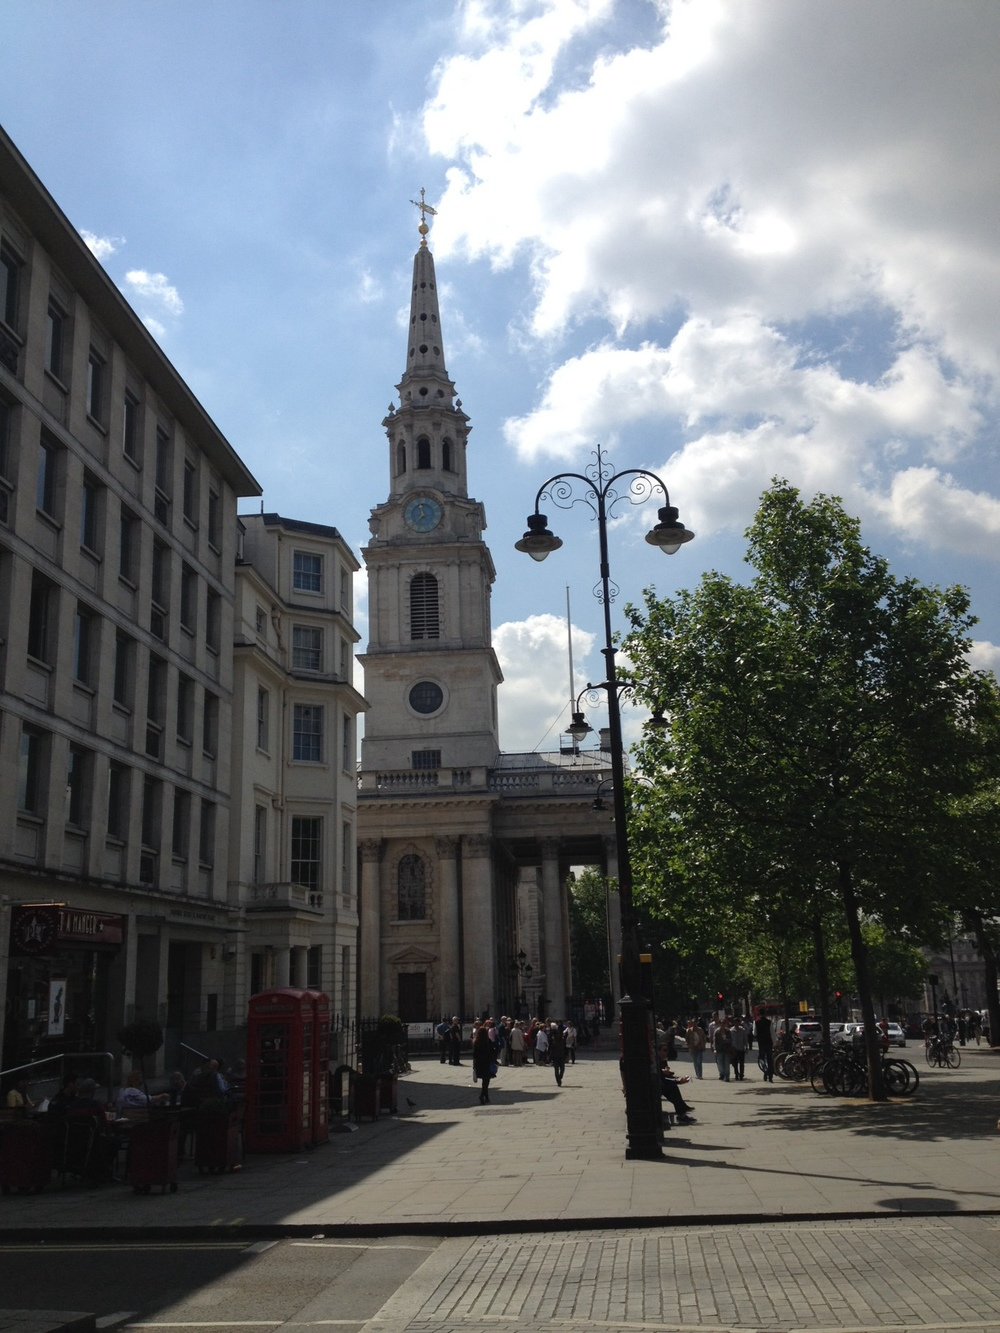 Street View of the historic St. Martin-in-the-Fields Church